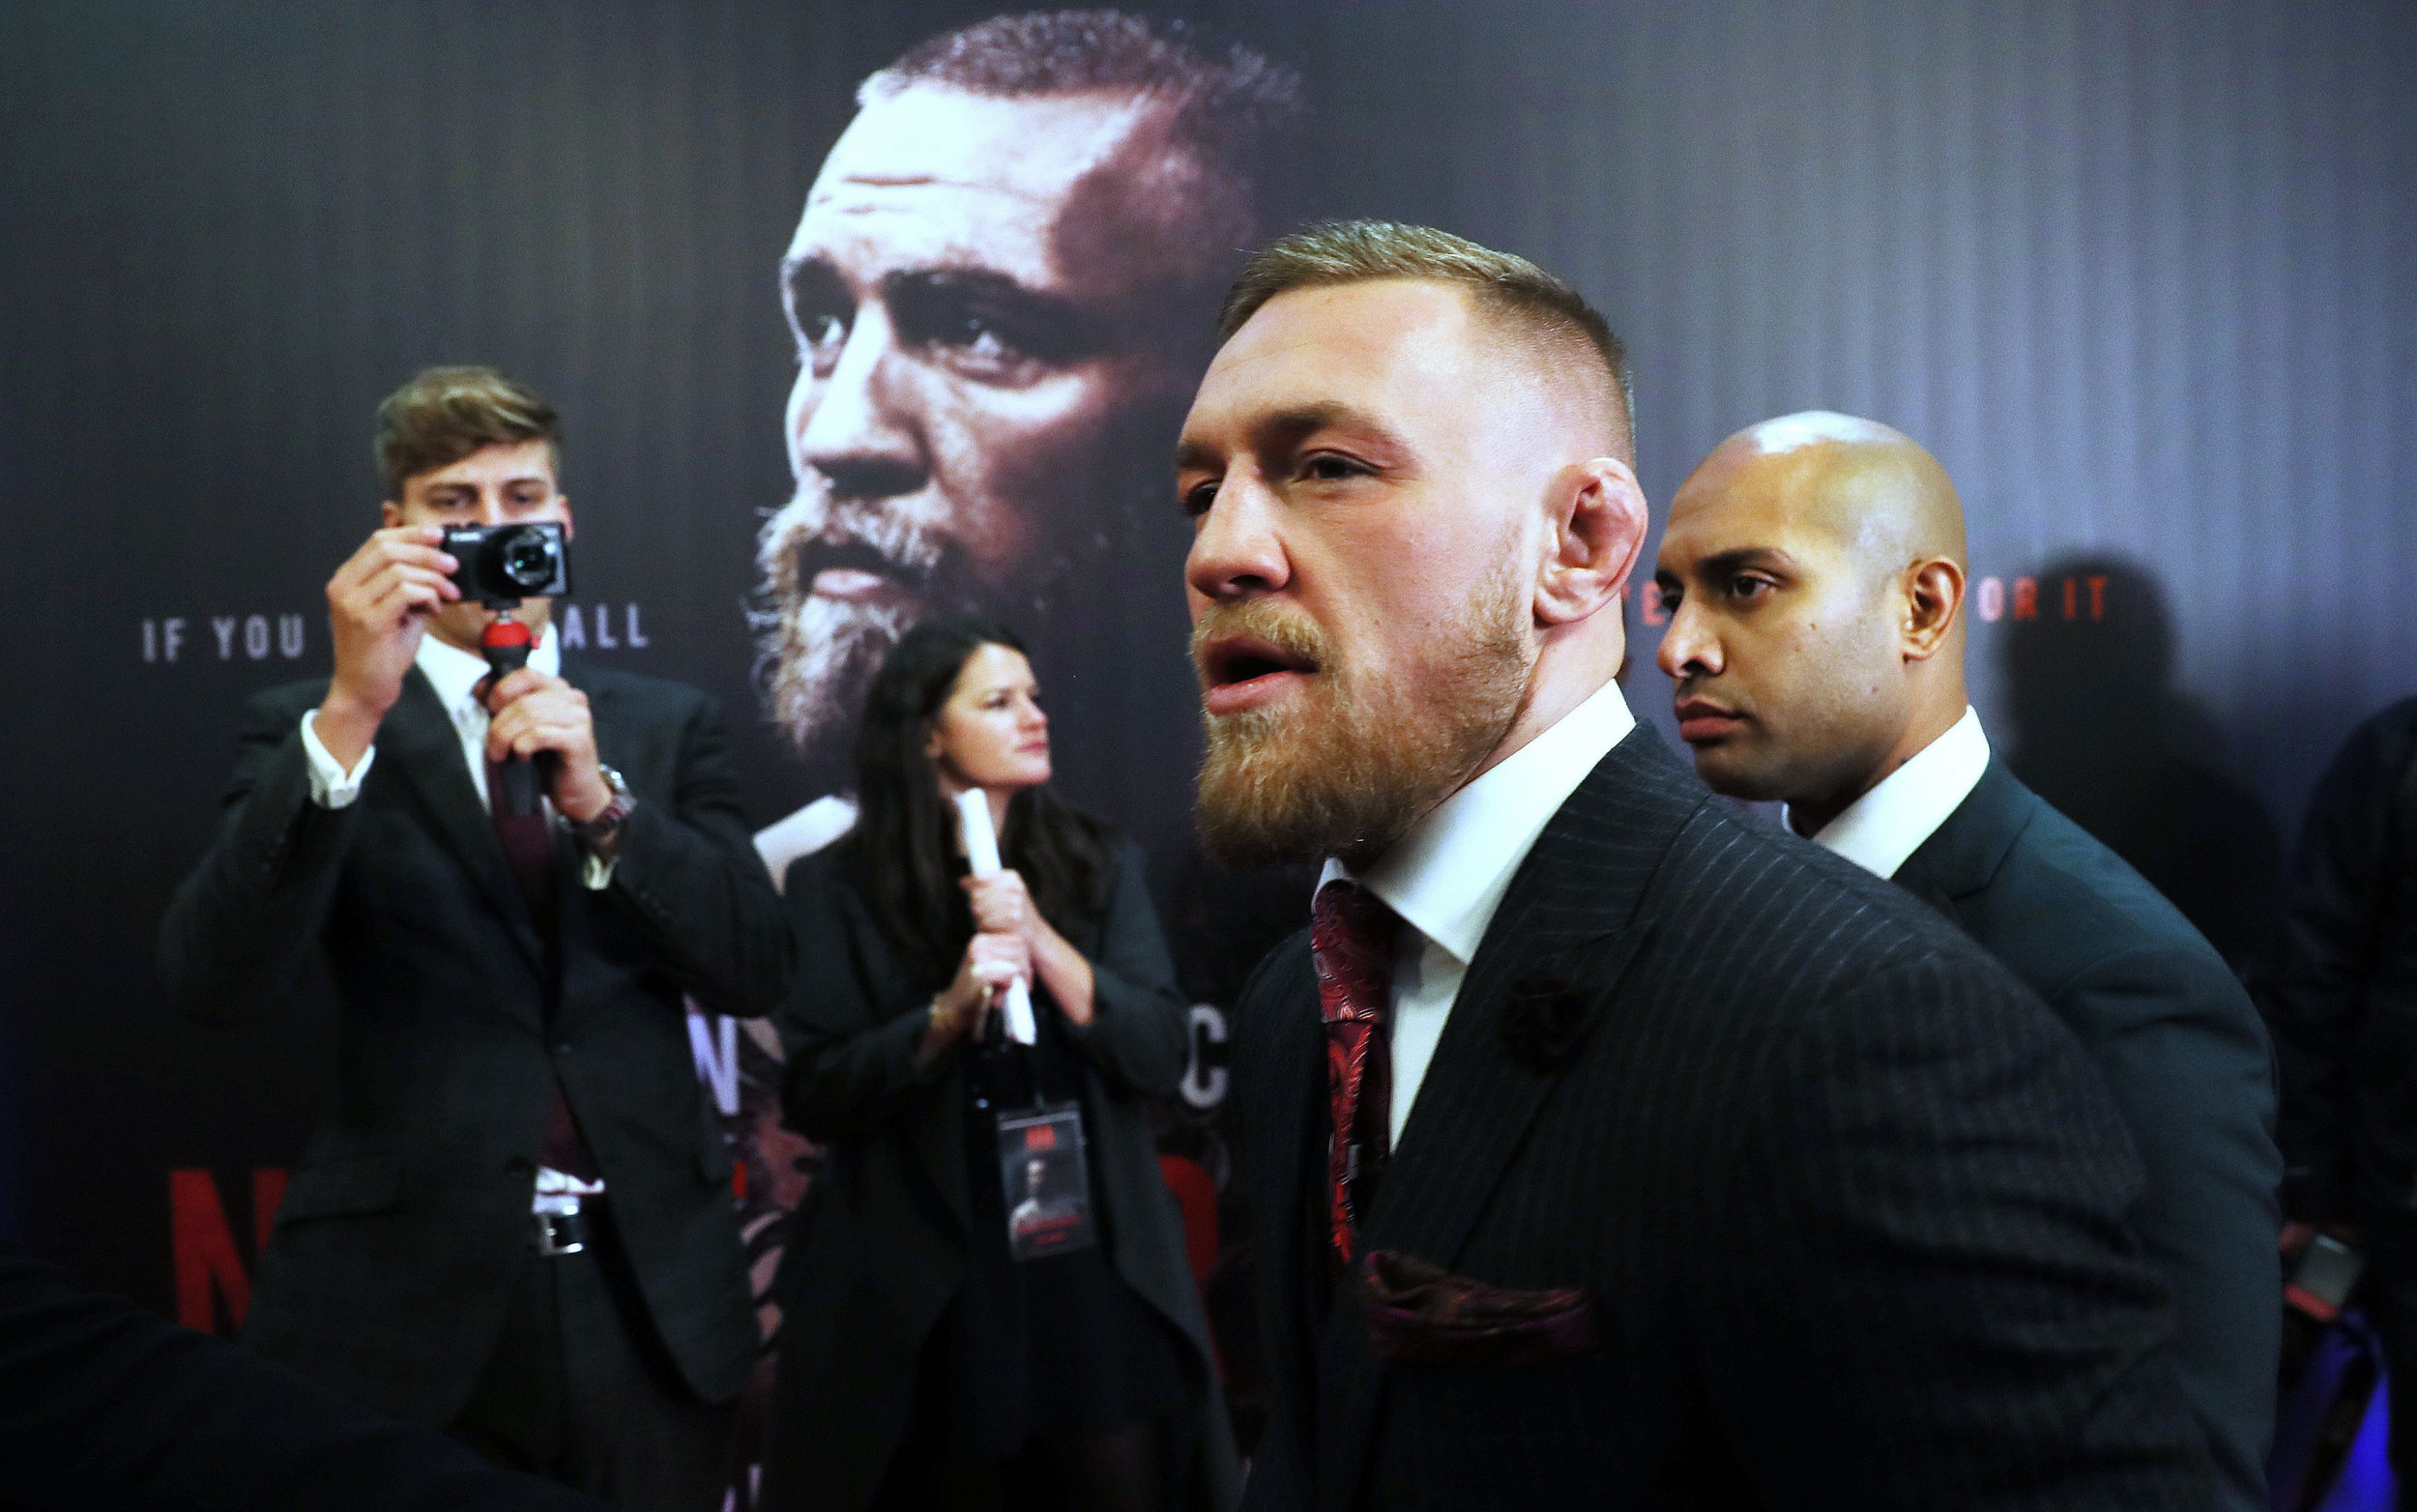 Conor McGregor 'Irish mob' incident 'absolute nonsense', says UFC star's dad